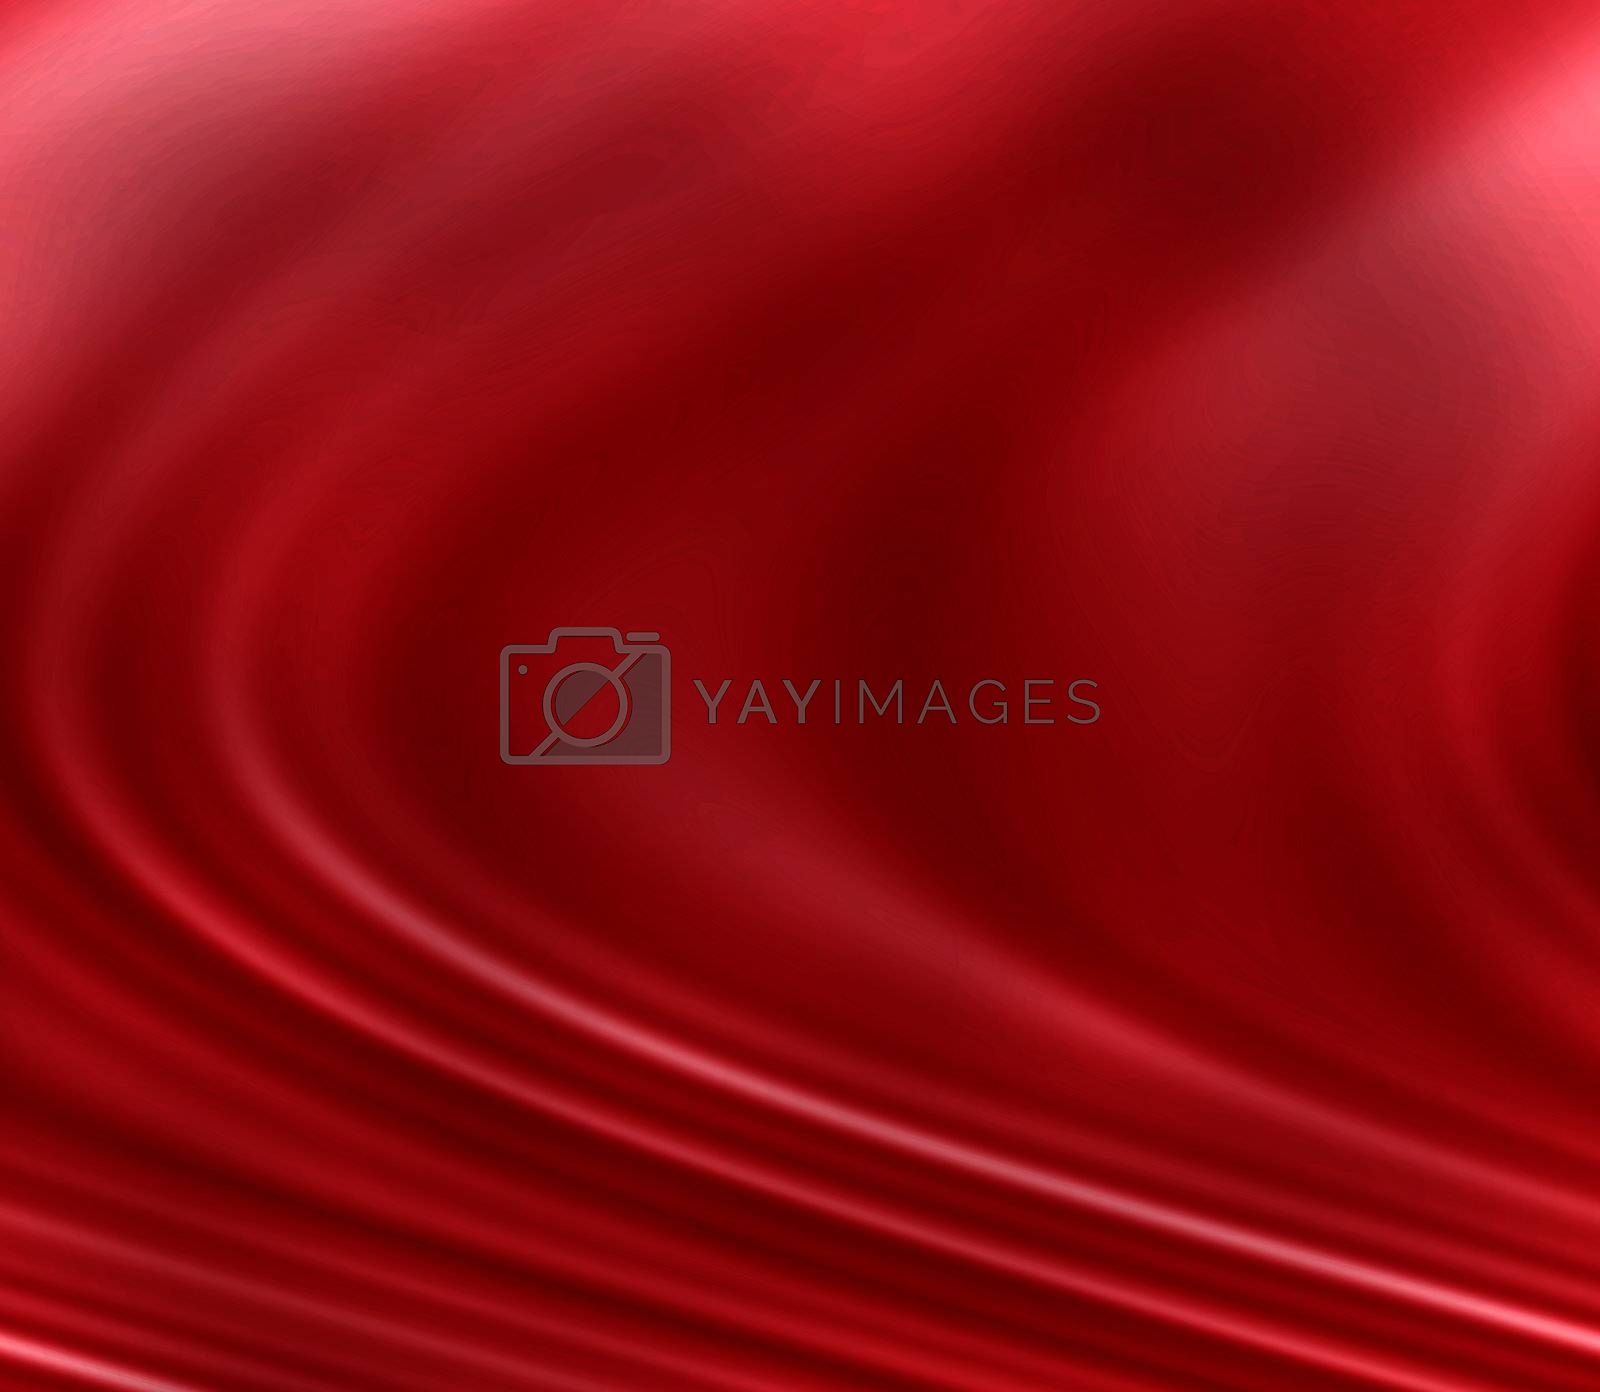 Background wallpaper to bright red fabric that seems